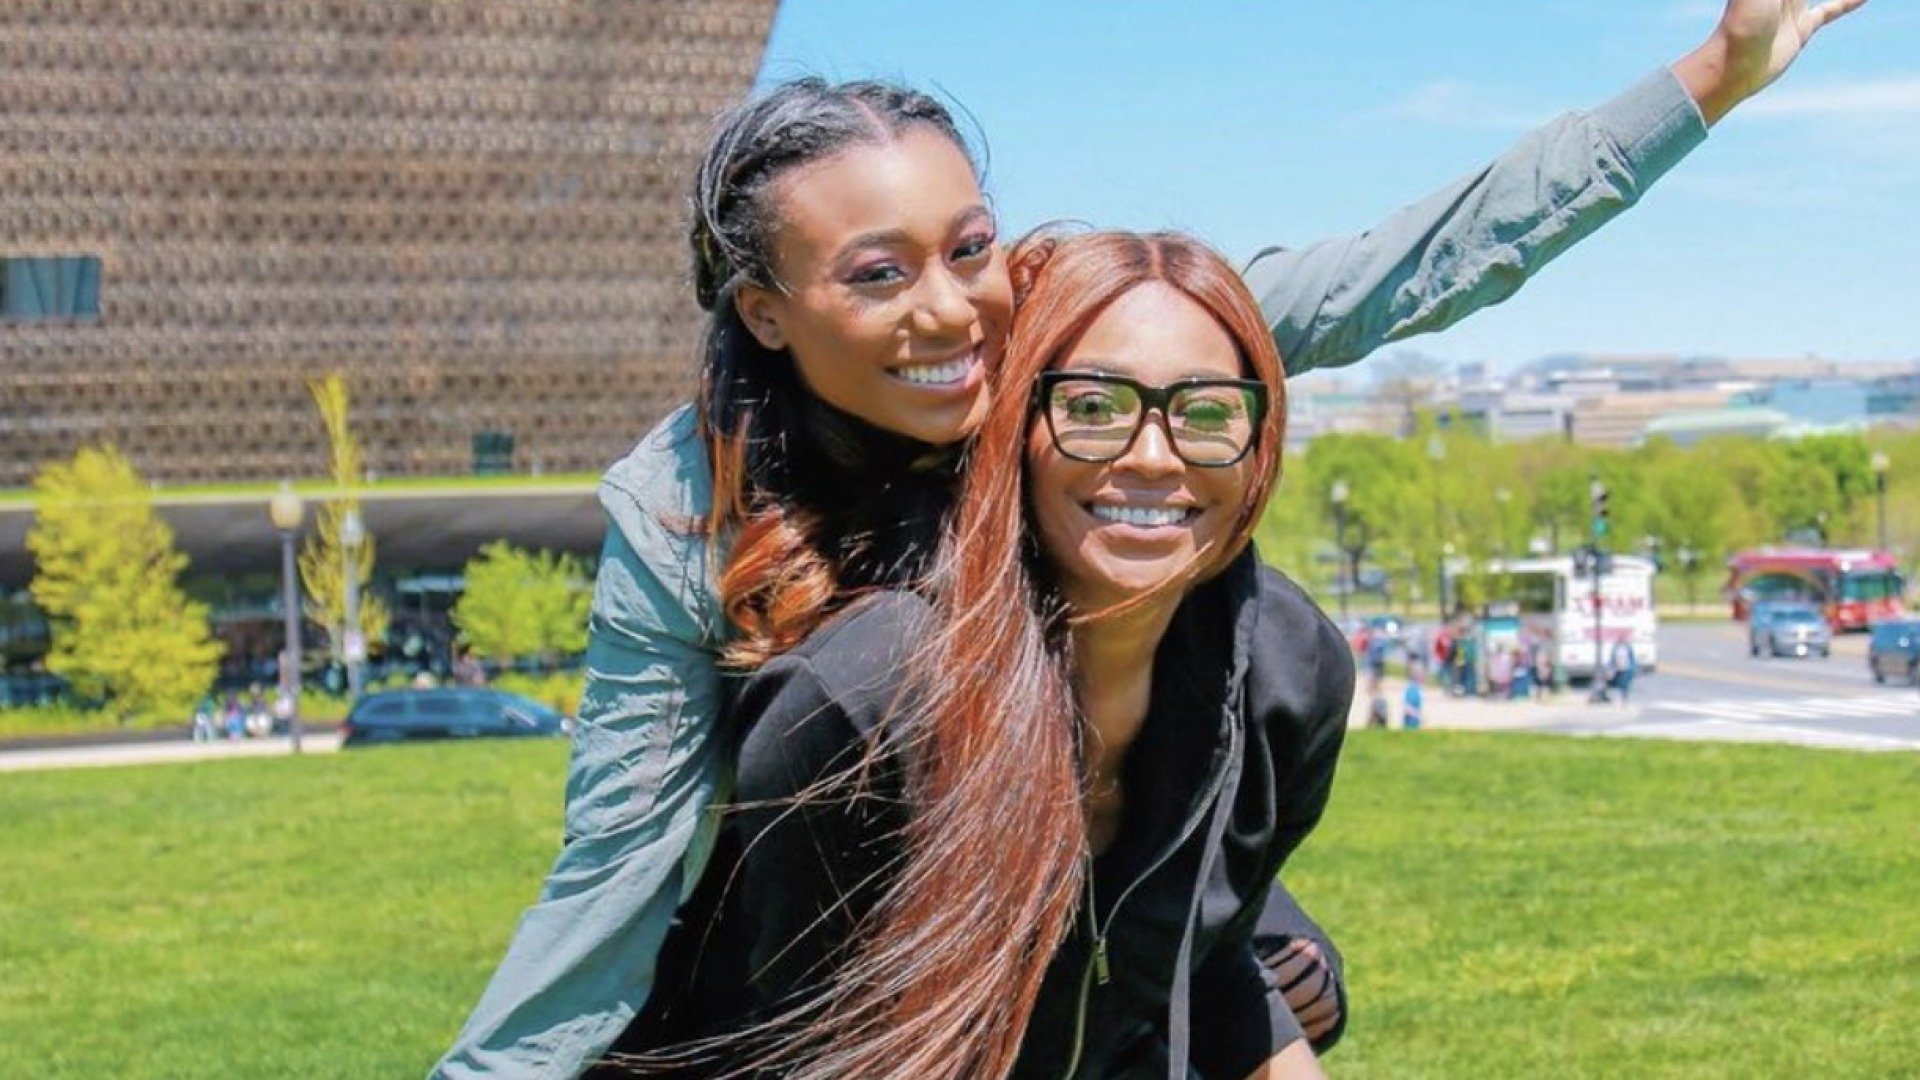 Cynthia Bailey Celebrates The Birthday Of A Special Friend – See Their Photo Together